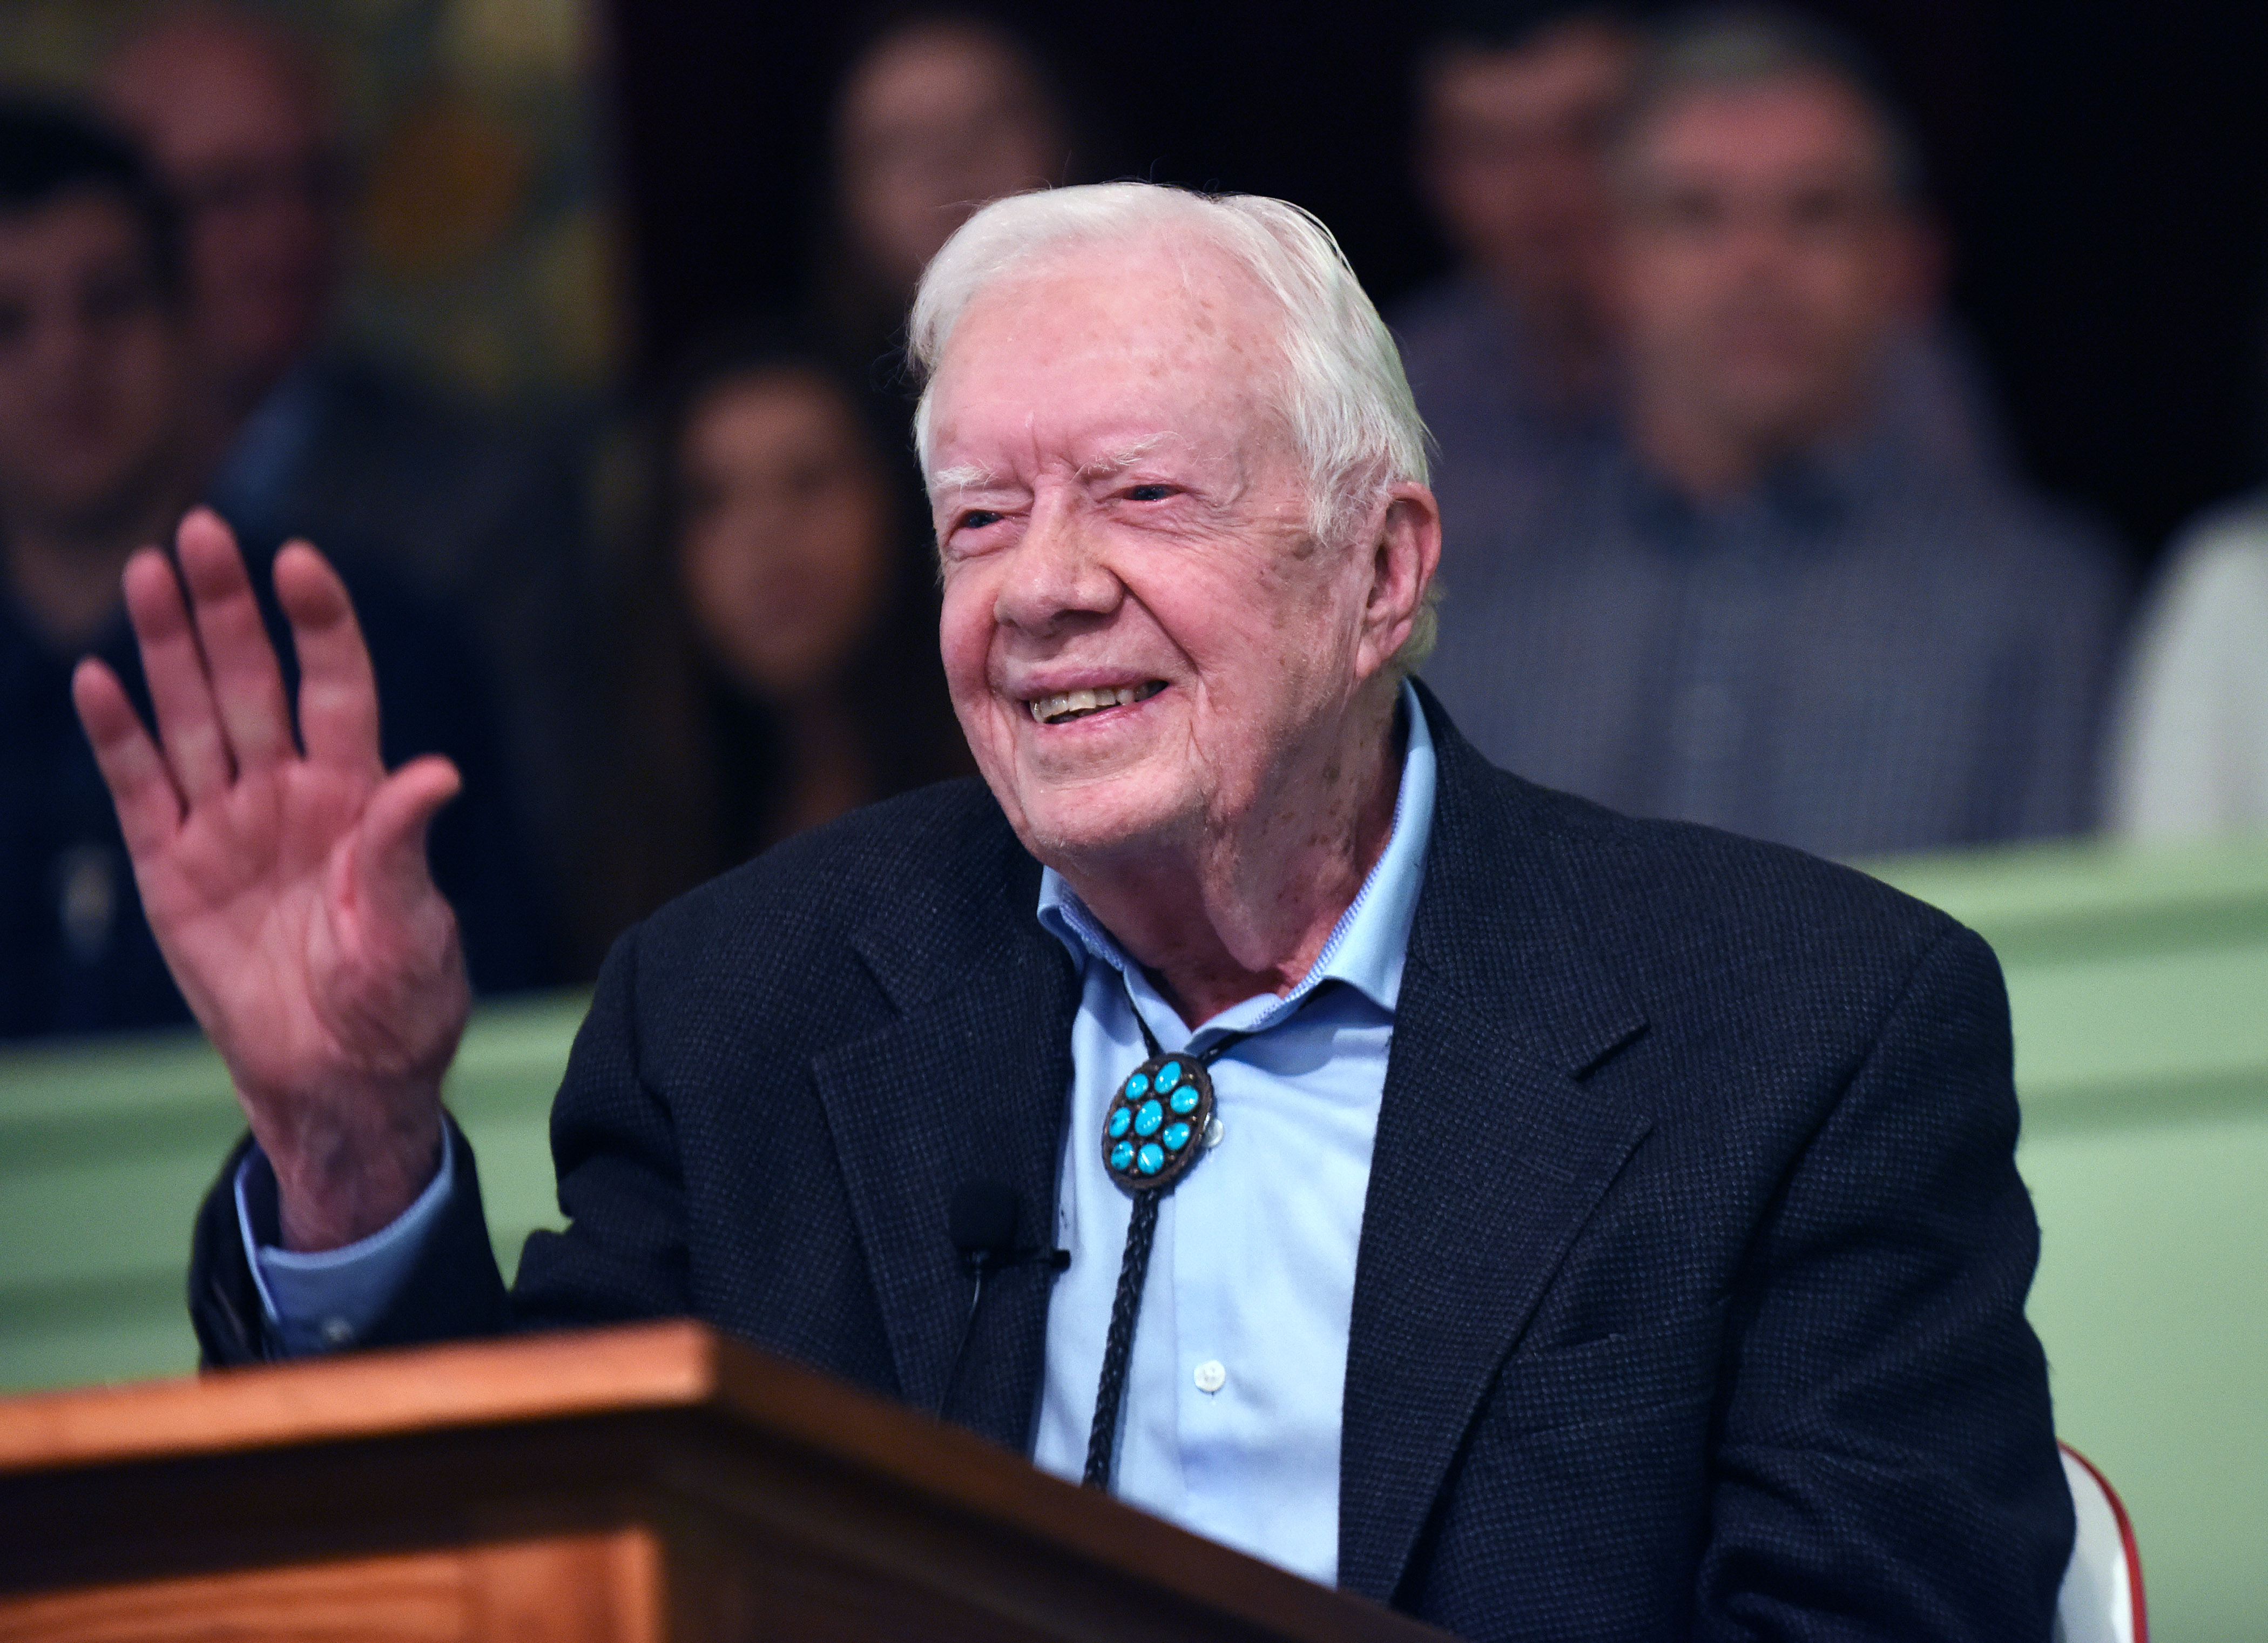 jimmy carter waving